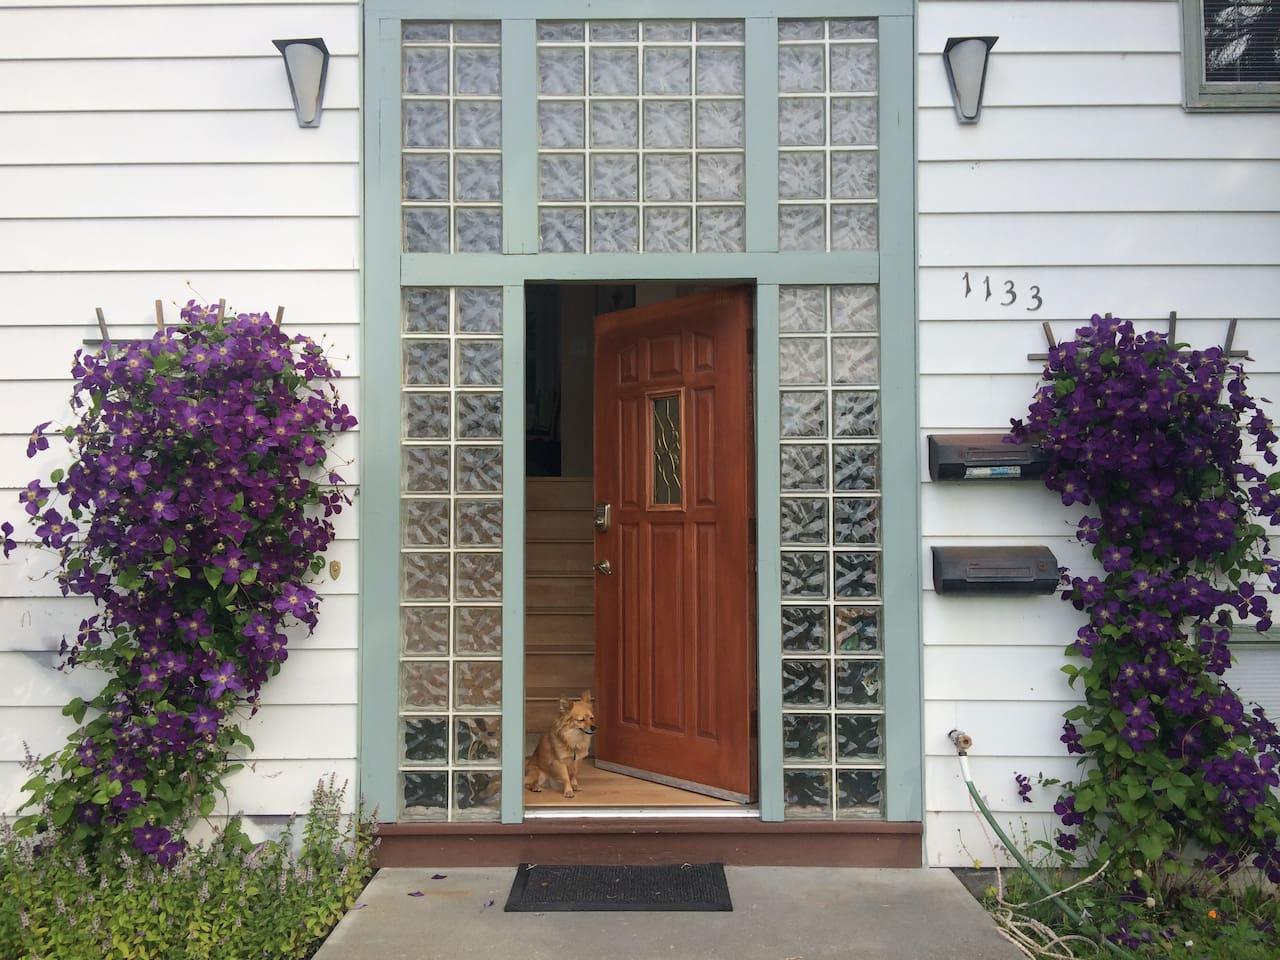 Our front door but you have your own private entrance too!